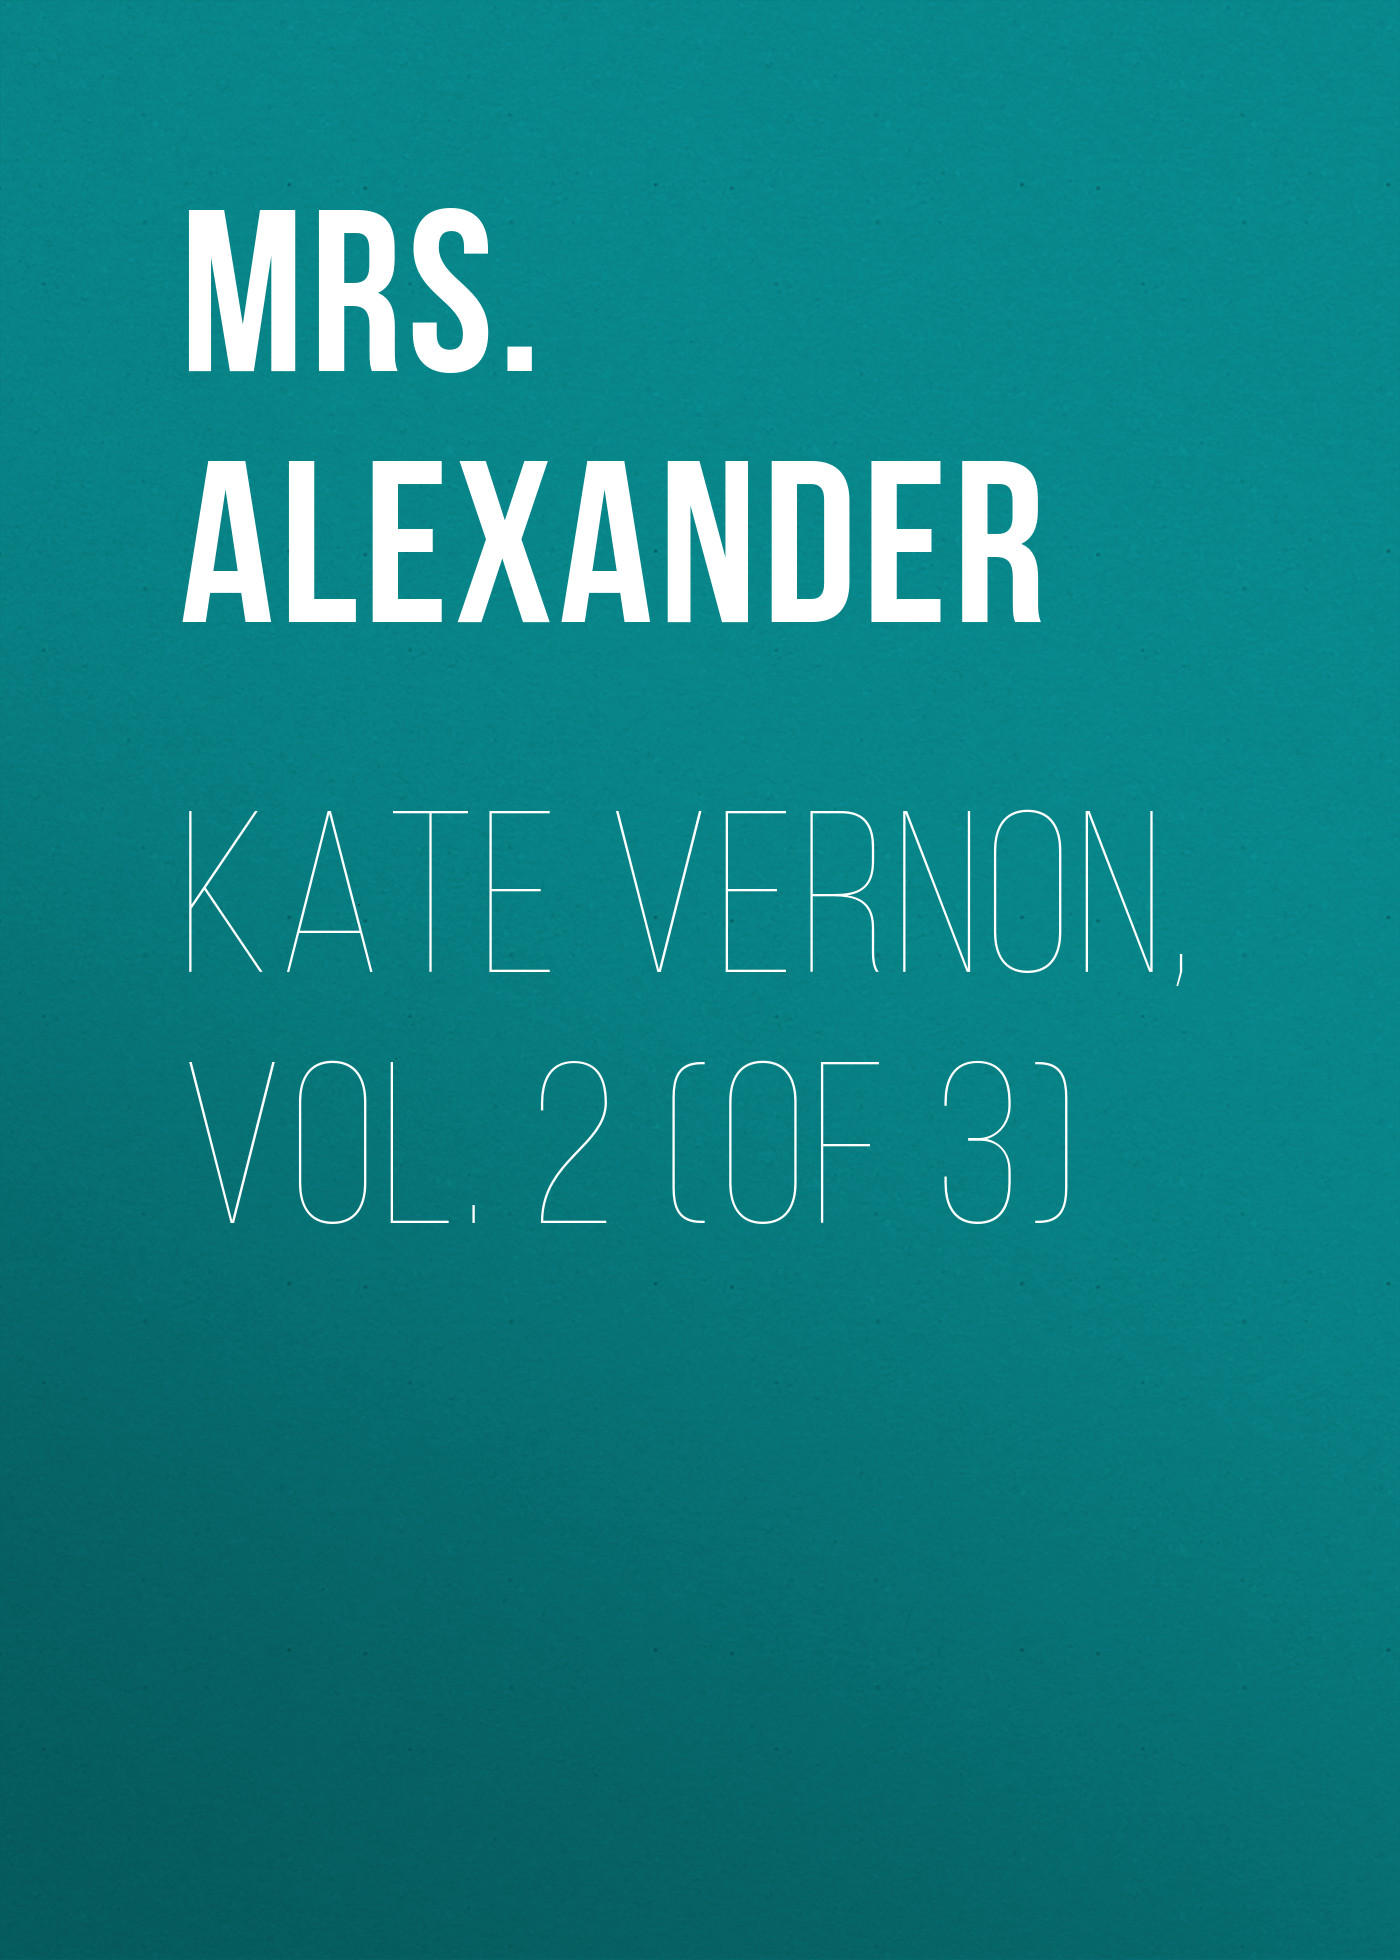 Mrs. Alexander Kate Vernon, Vol. 2 (of 3)